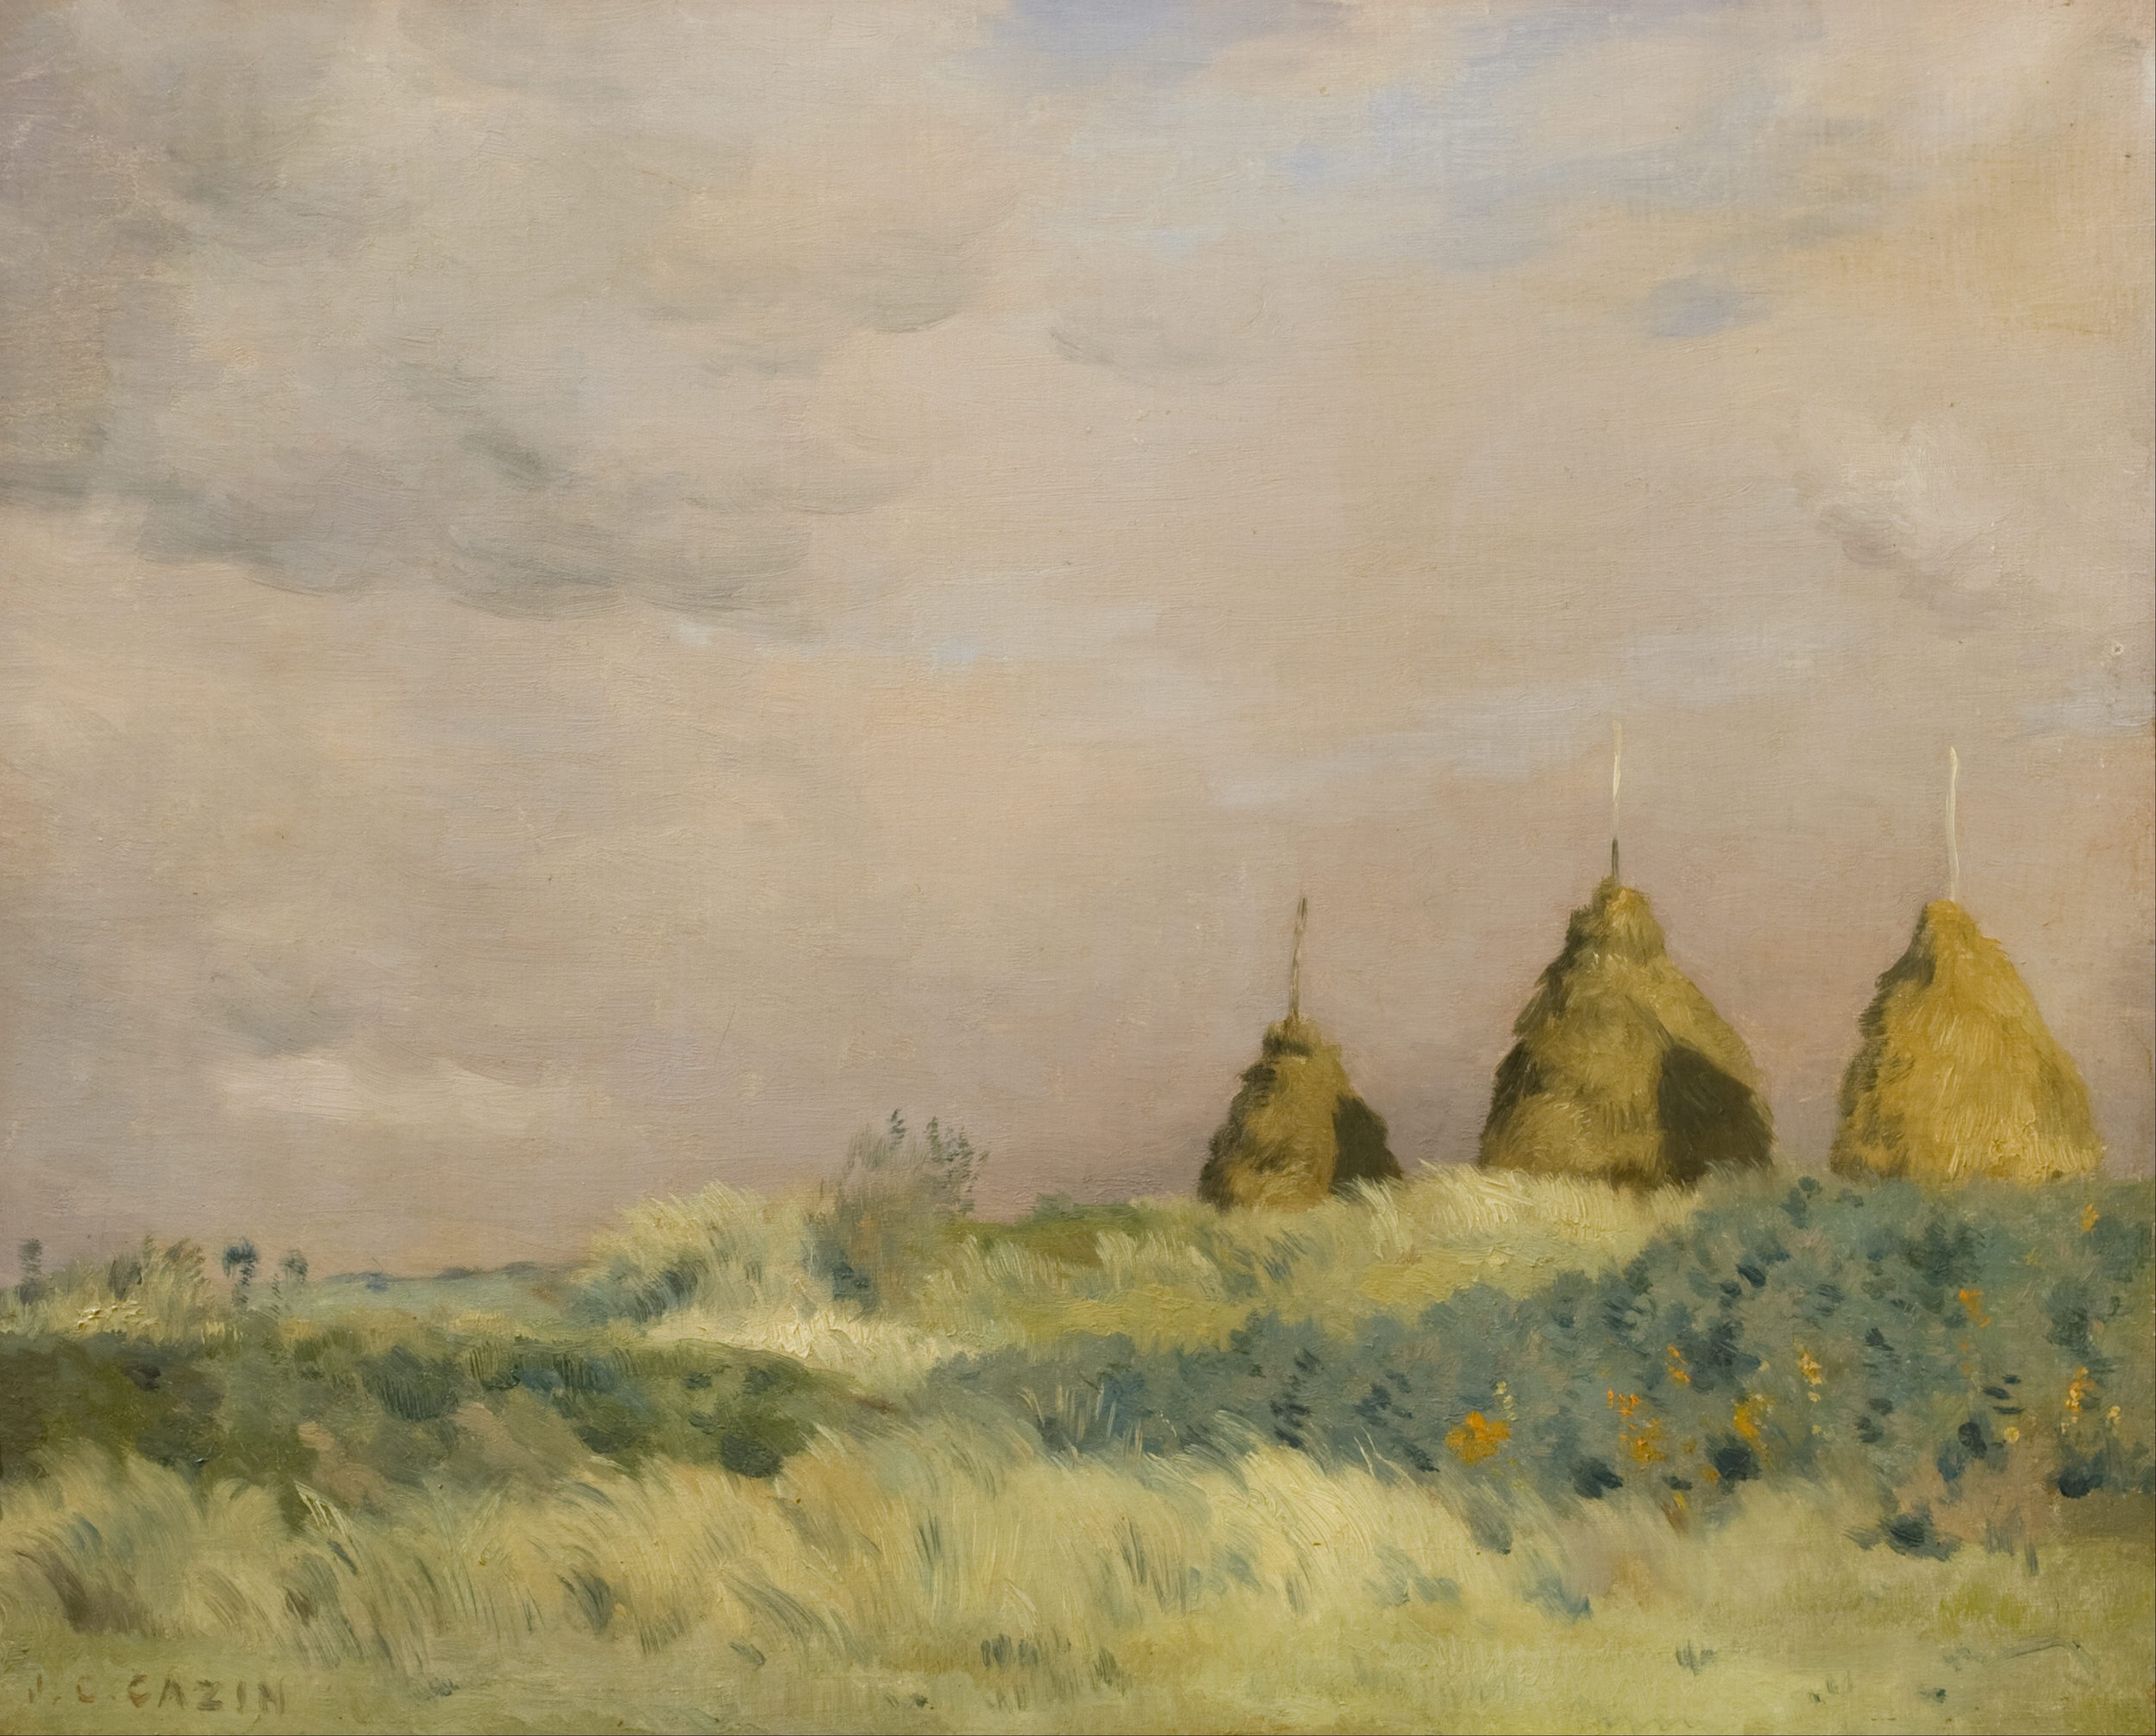 Cazin_-_The_three_stacks_-_Google_Art_Project